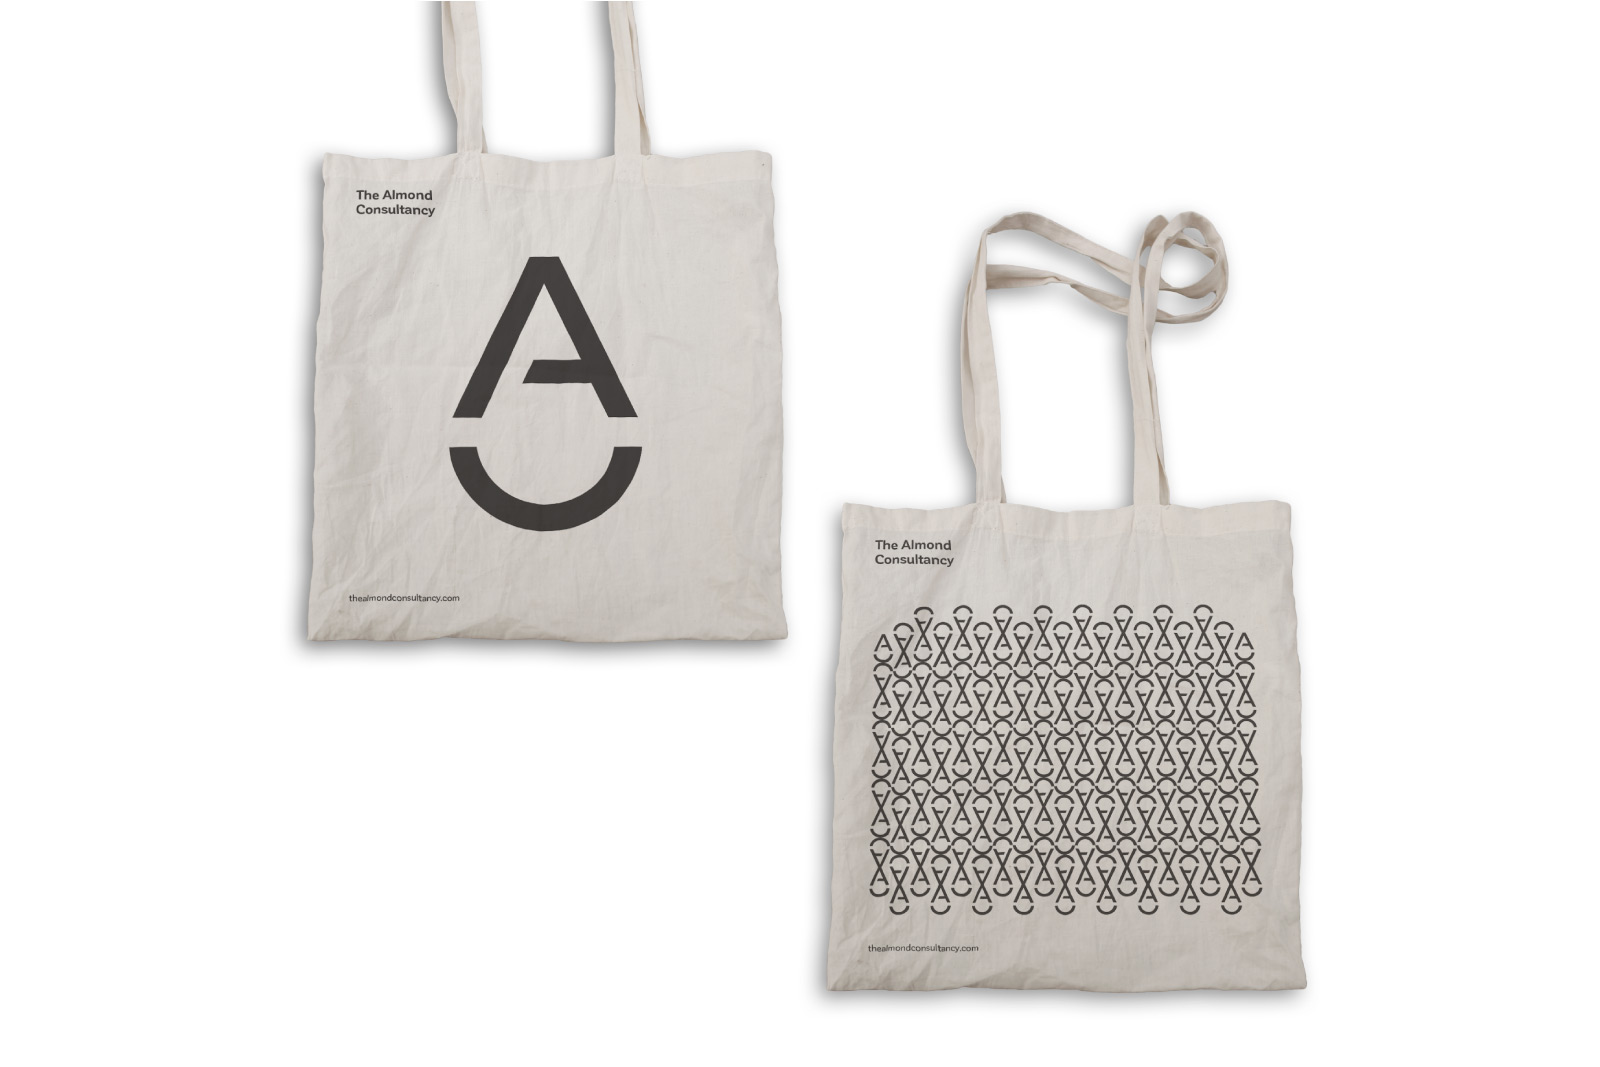 almond logo bag